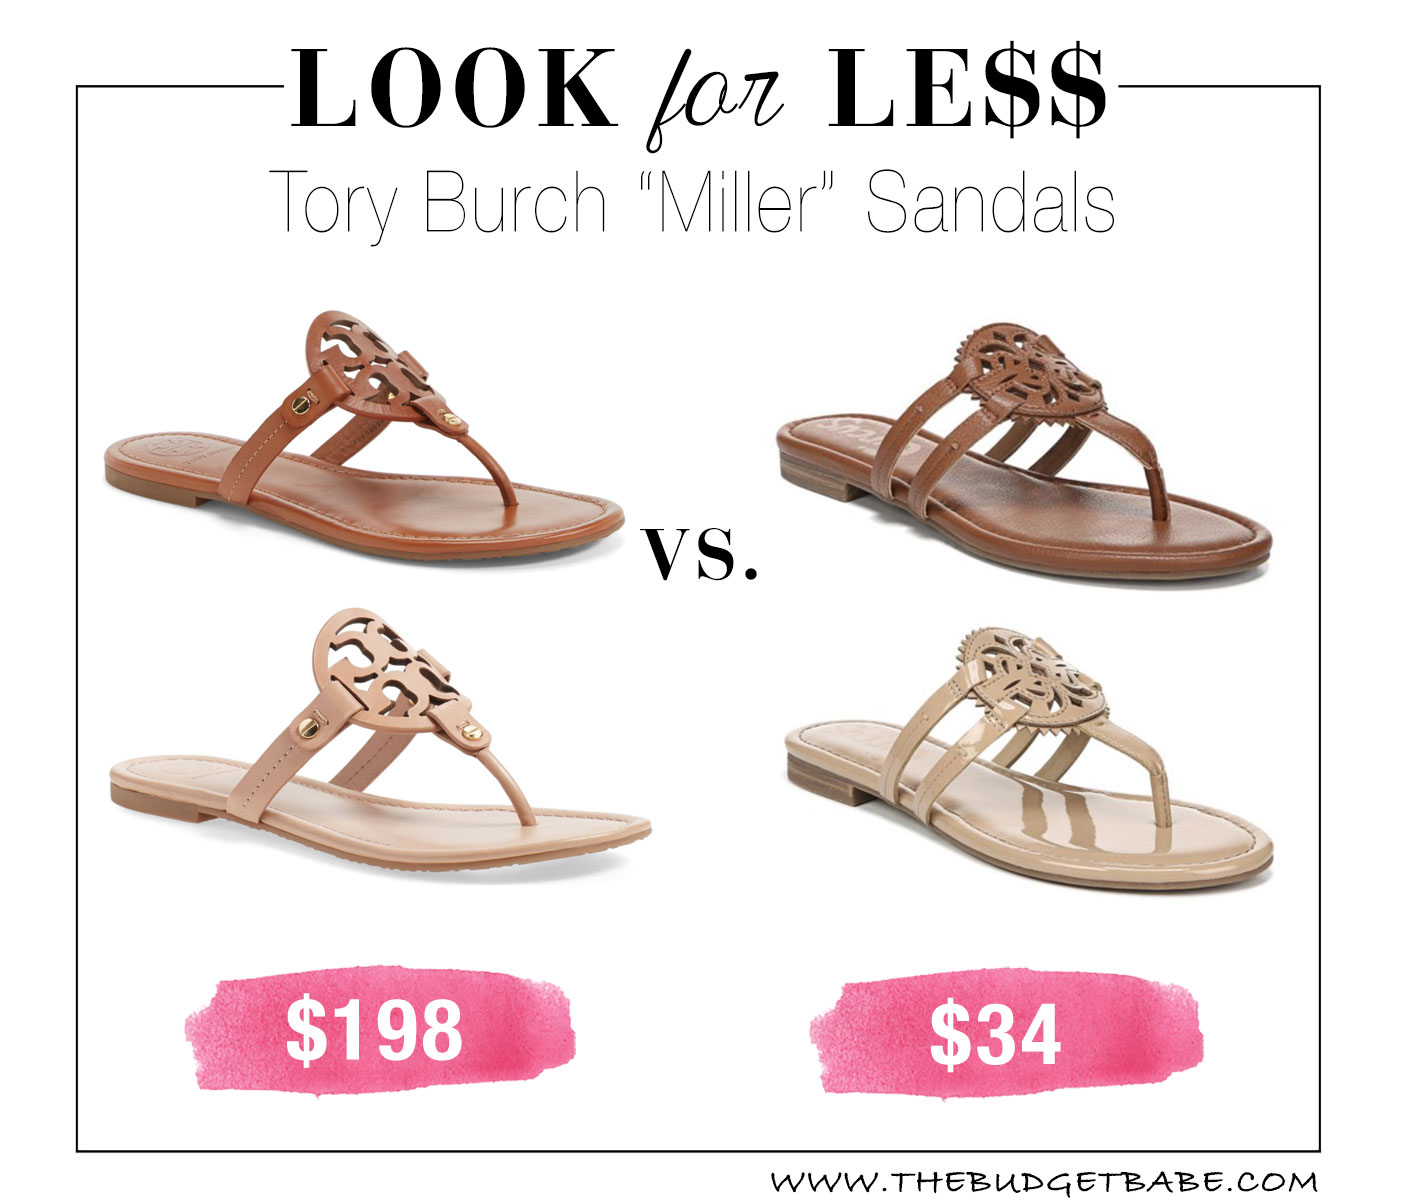 Tory Miller dupes - Miller flip flop sandals look for less